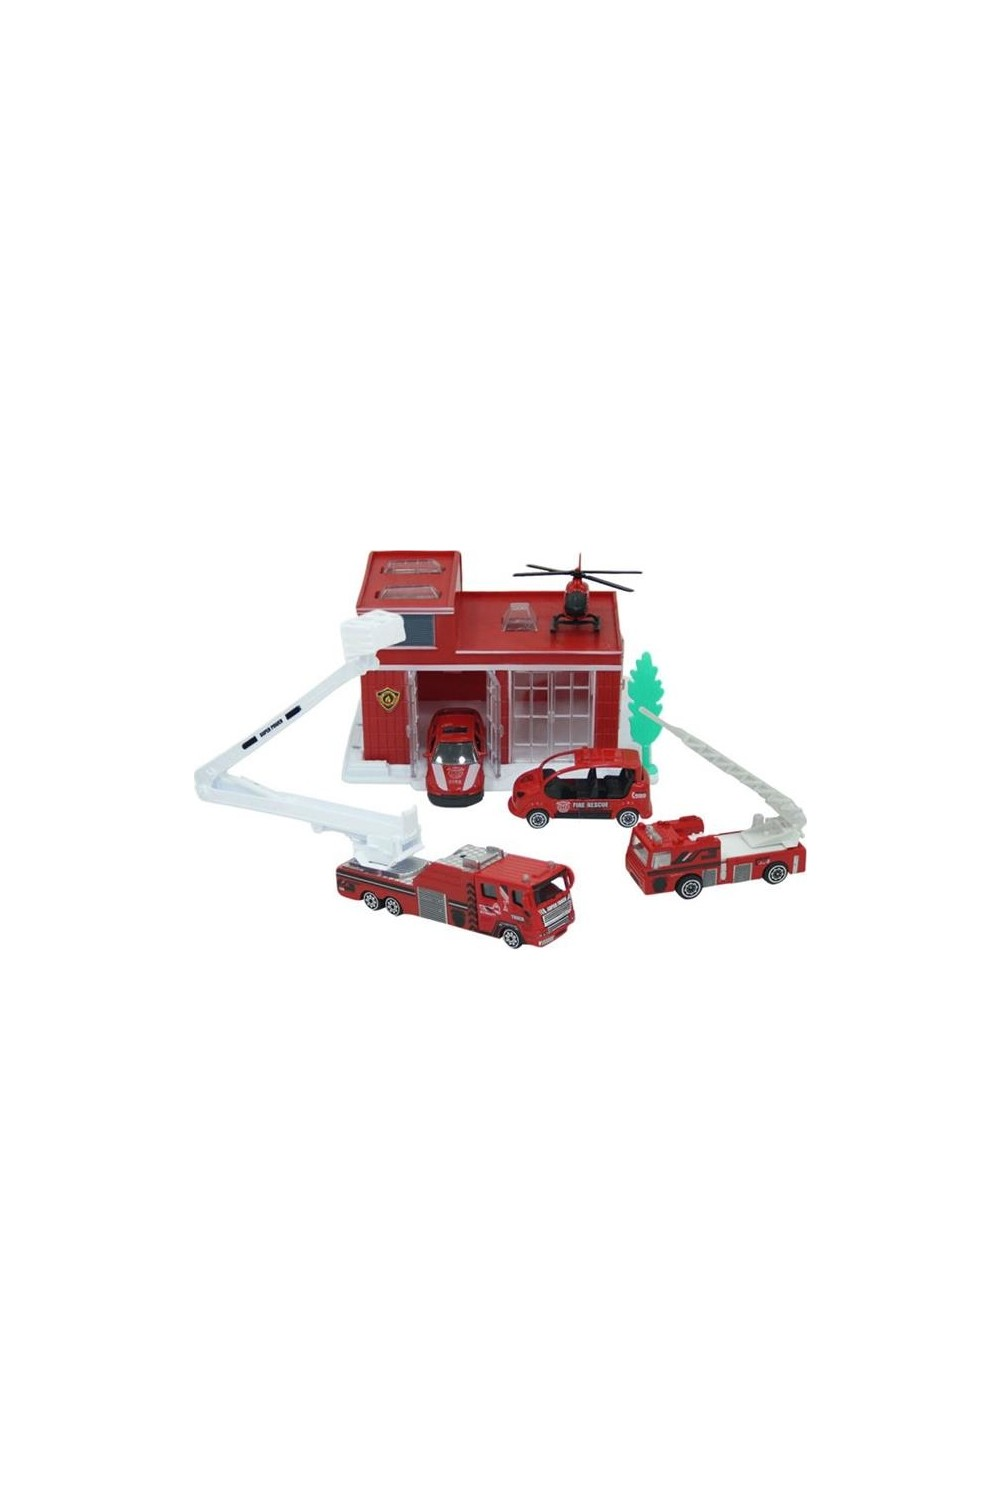 Maxx Wheels Kids Vehicle Toy-Garage Kit S00002028